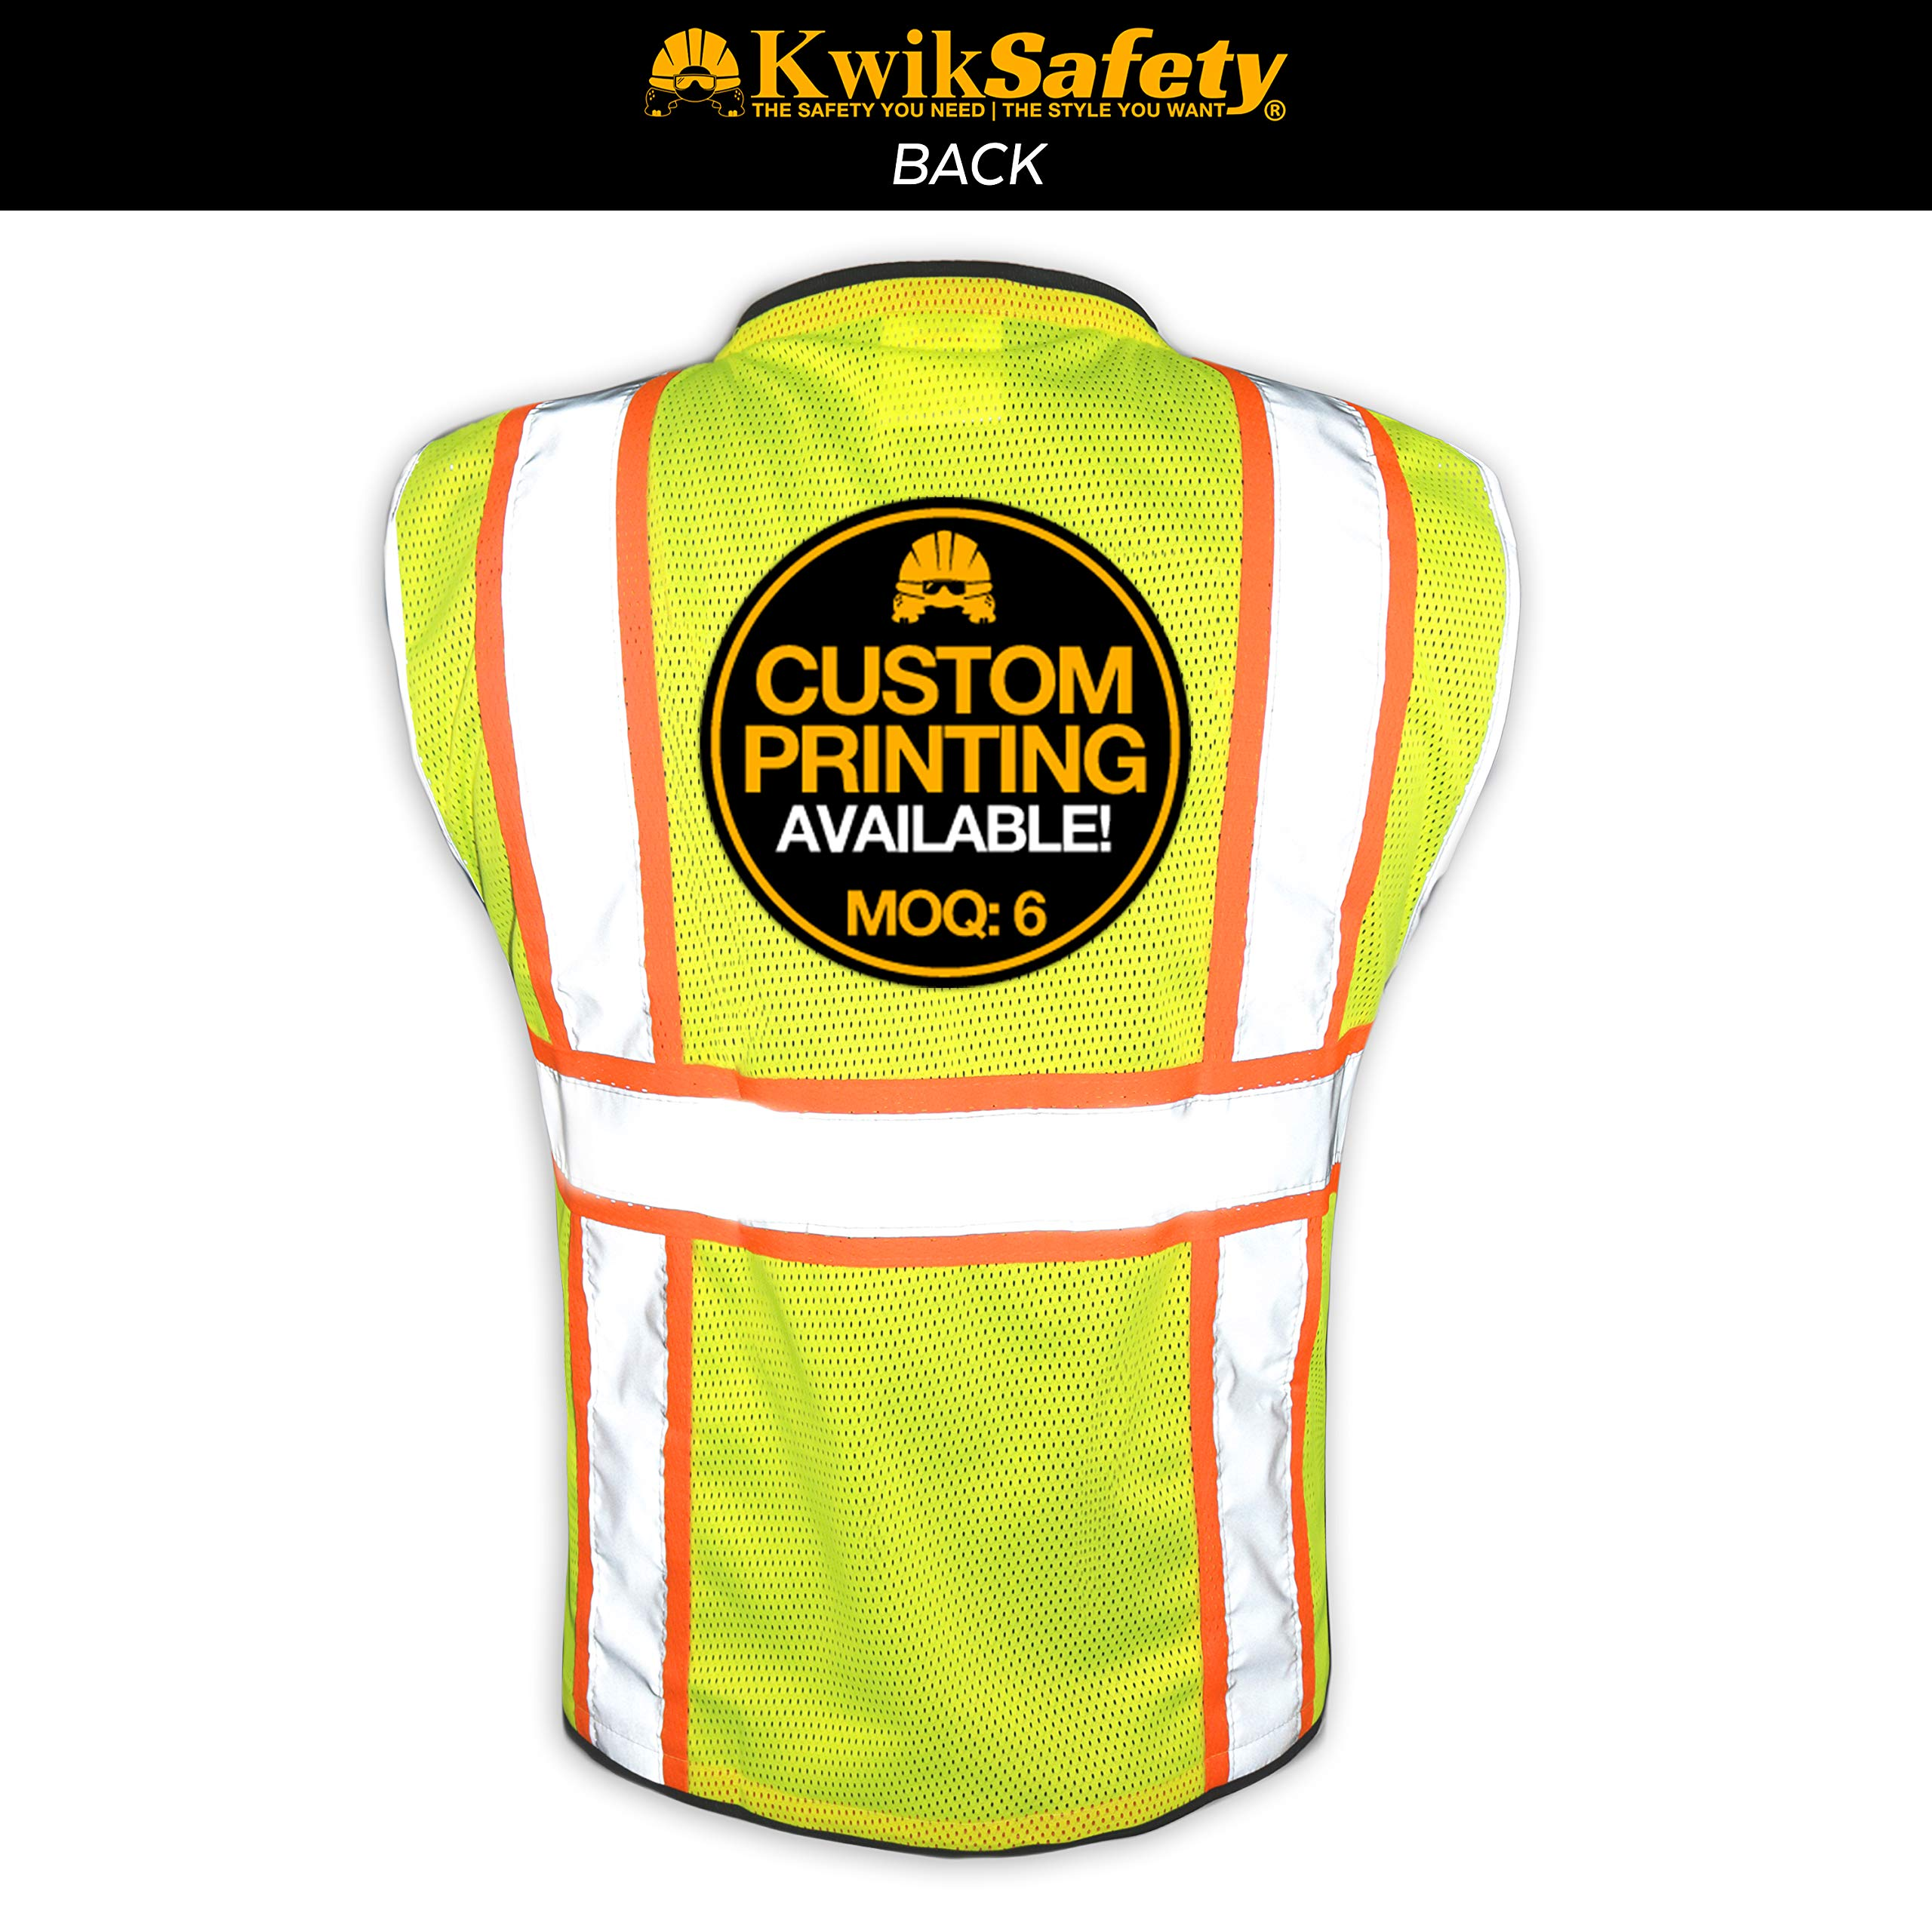 KwikSafety (Charlotte, NC) BIG KAHUNA (11 Pockets) Class 2 ANSI High Visibility Reflective Safety Vest Heavy Duty Mesh with Zipper and HiVis for OSHA Construction Work HiViz Men Yellow Black Small by KwikSafety (Image #2)